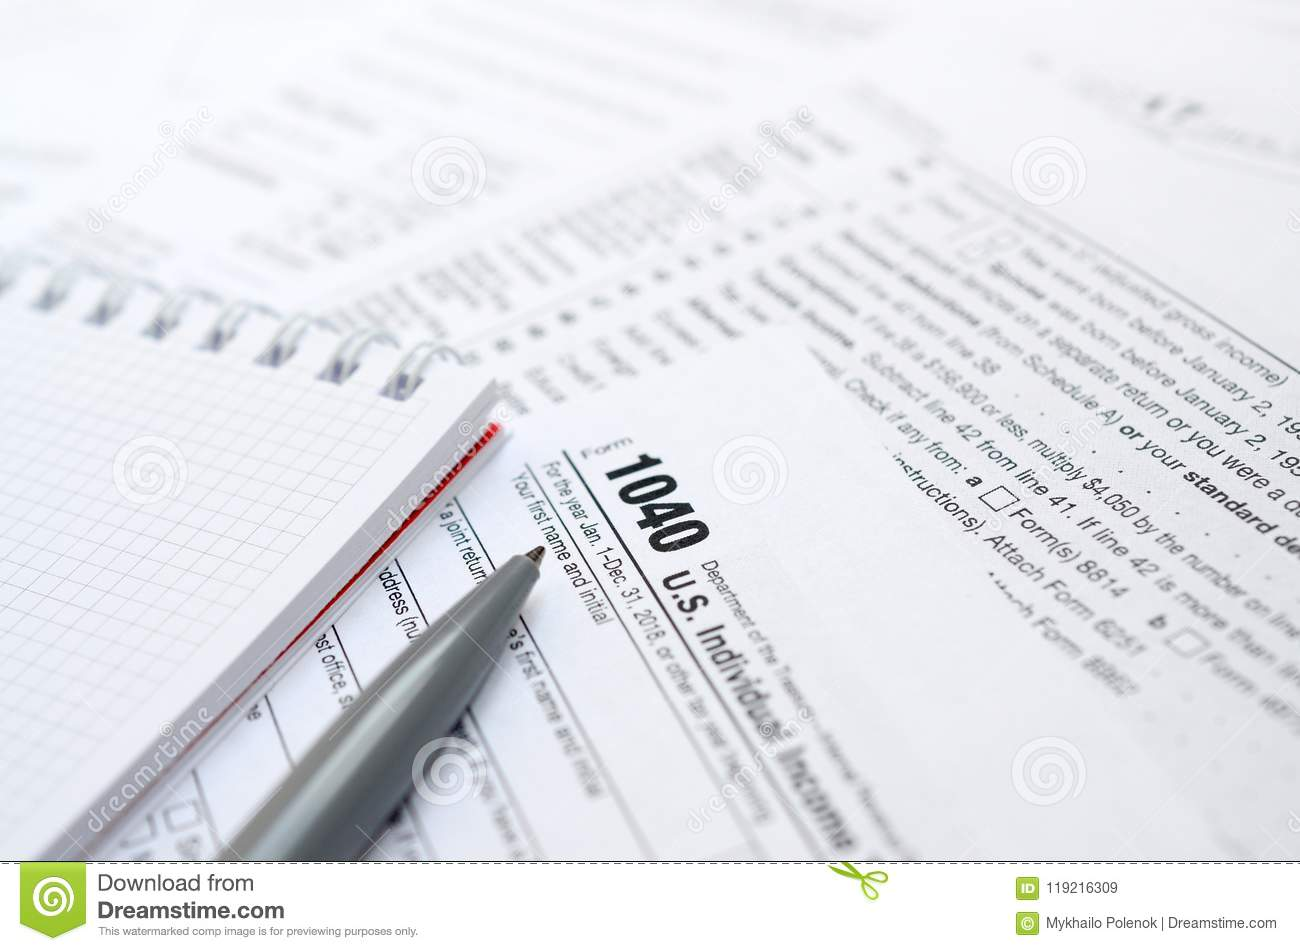 The Pen And Notebook Is Lies On The Tax Form 1040 Us Individua